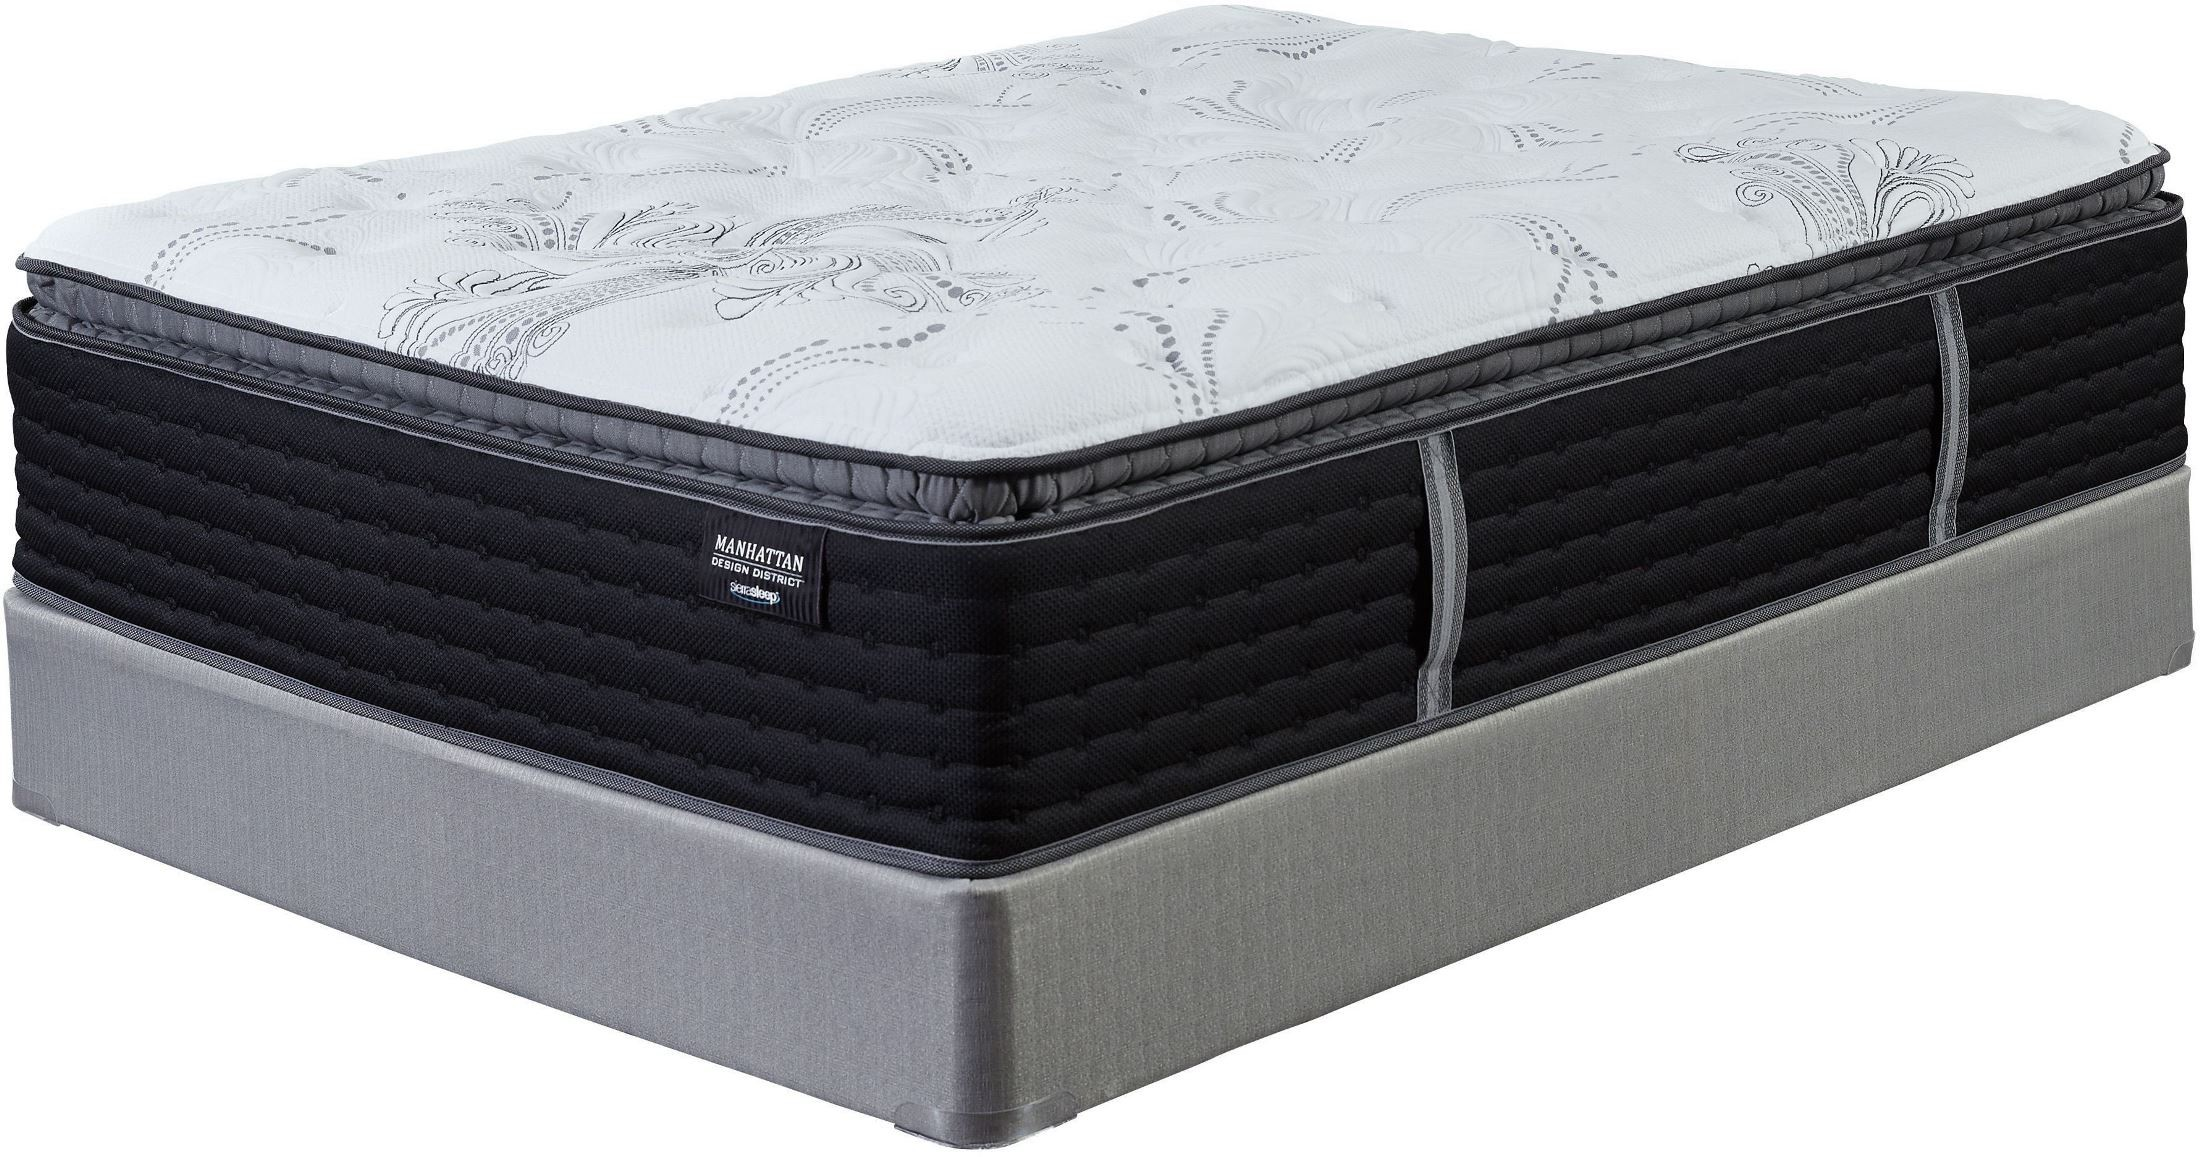 manhattan design district firm pillow top white queen mattress with adjustable bed m82831 ashley. Black Bedroom Furniture Sets. Home Design Ideas